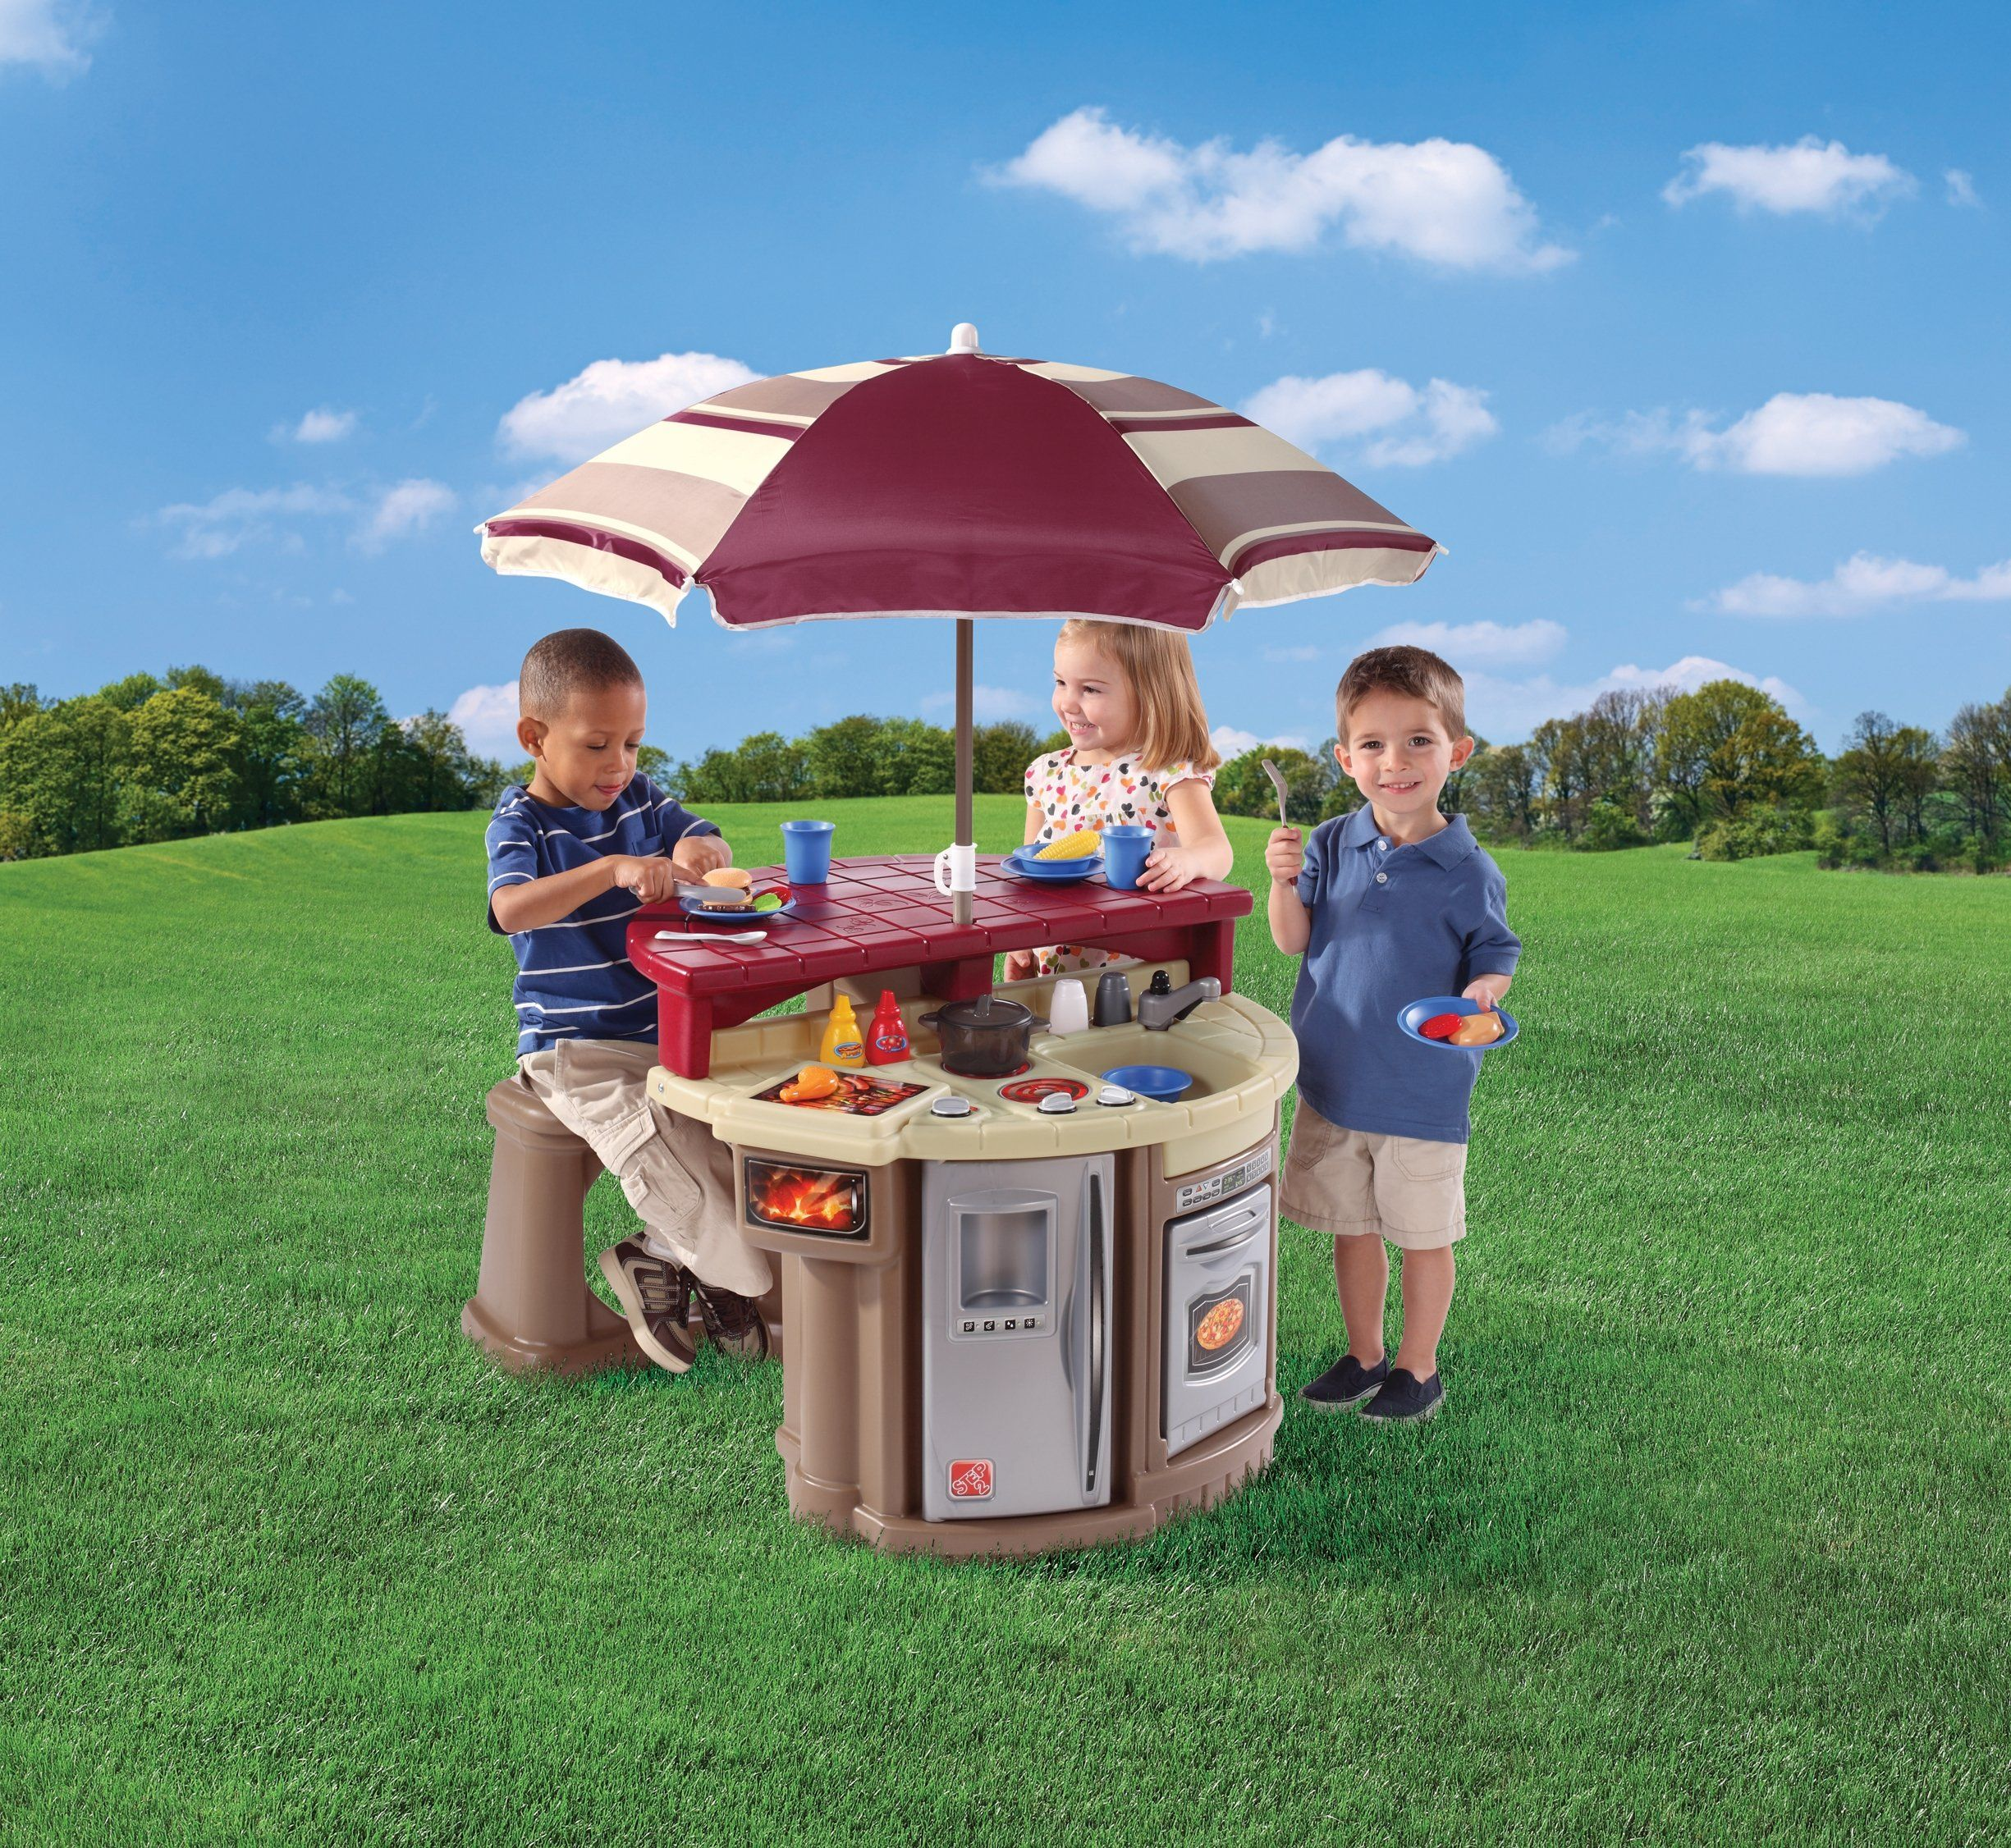 Amazon Step2 Grill and Play Patio Cafe Toys & Games